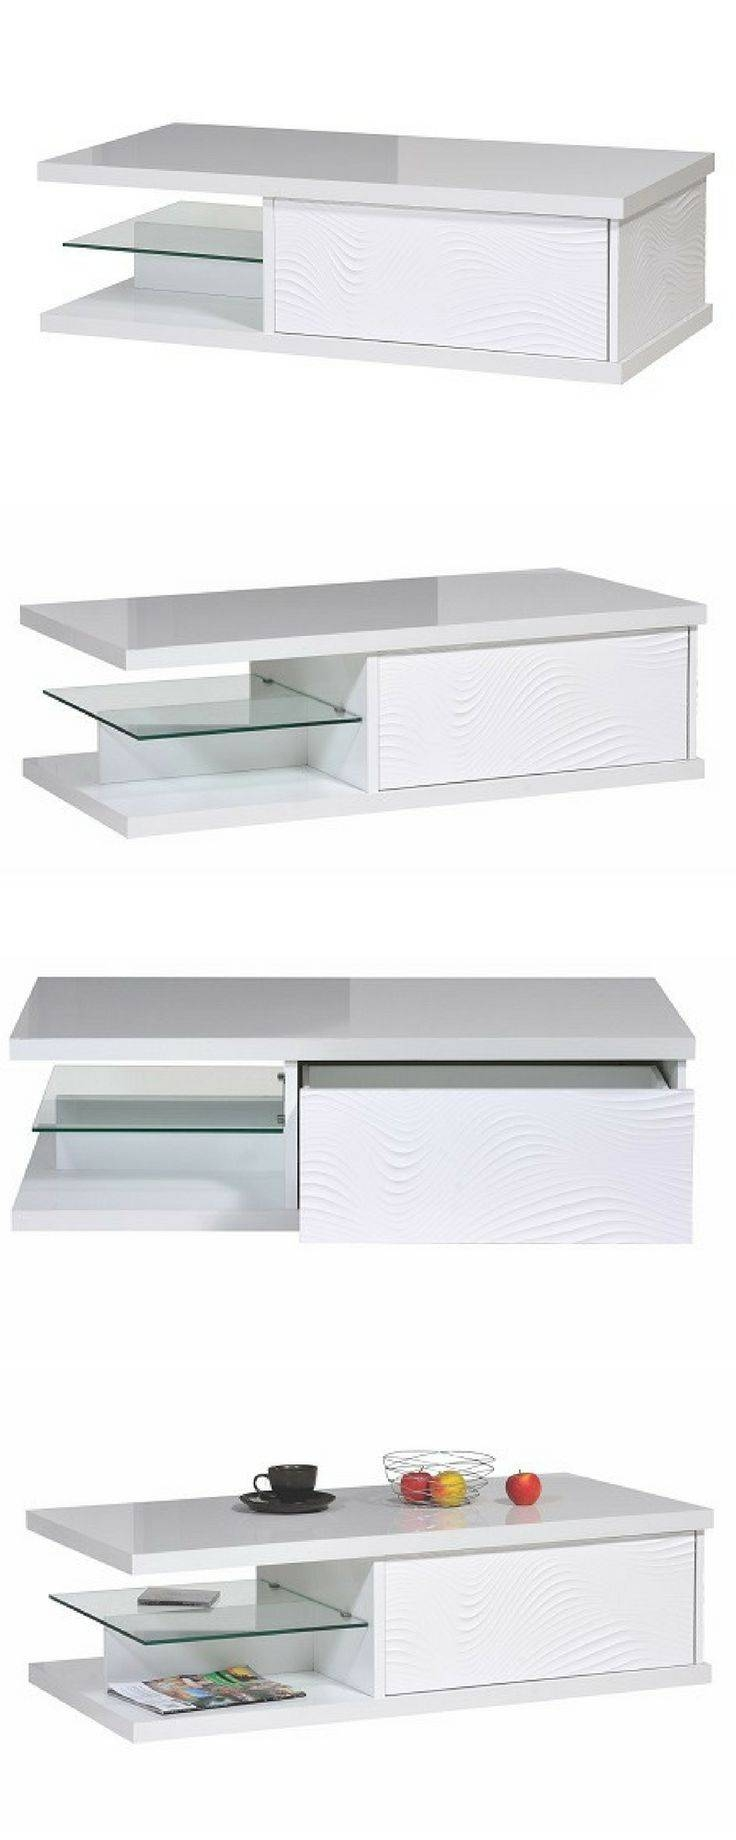 Best 25+ White Gloss Coffee Table Ideas On Pinterest | Table Tops throughout White Gloss Coffee Tables (Image 3 of 30)